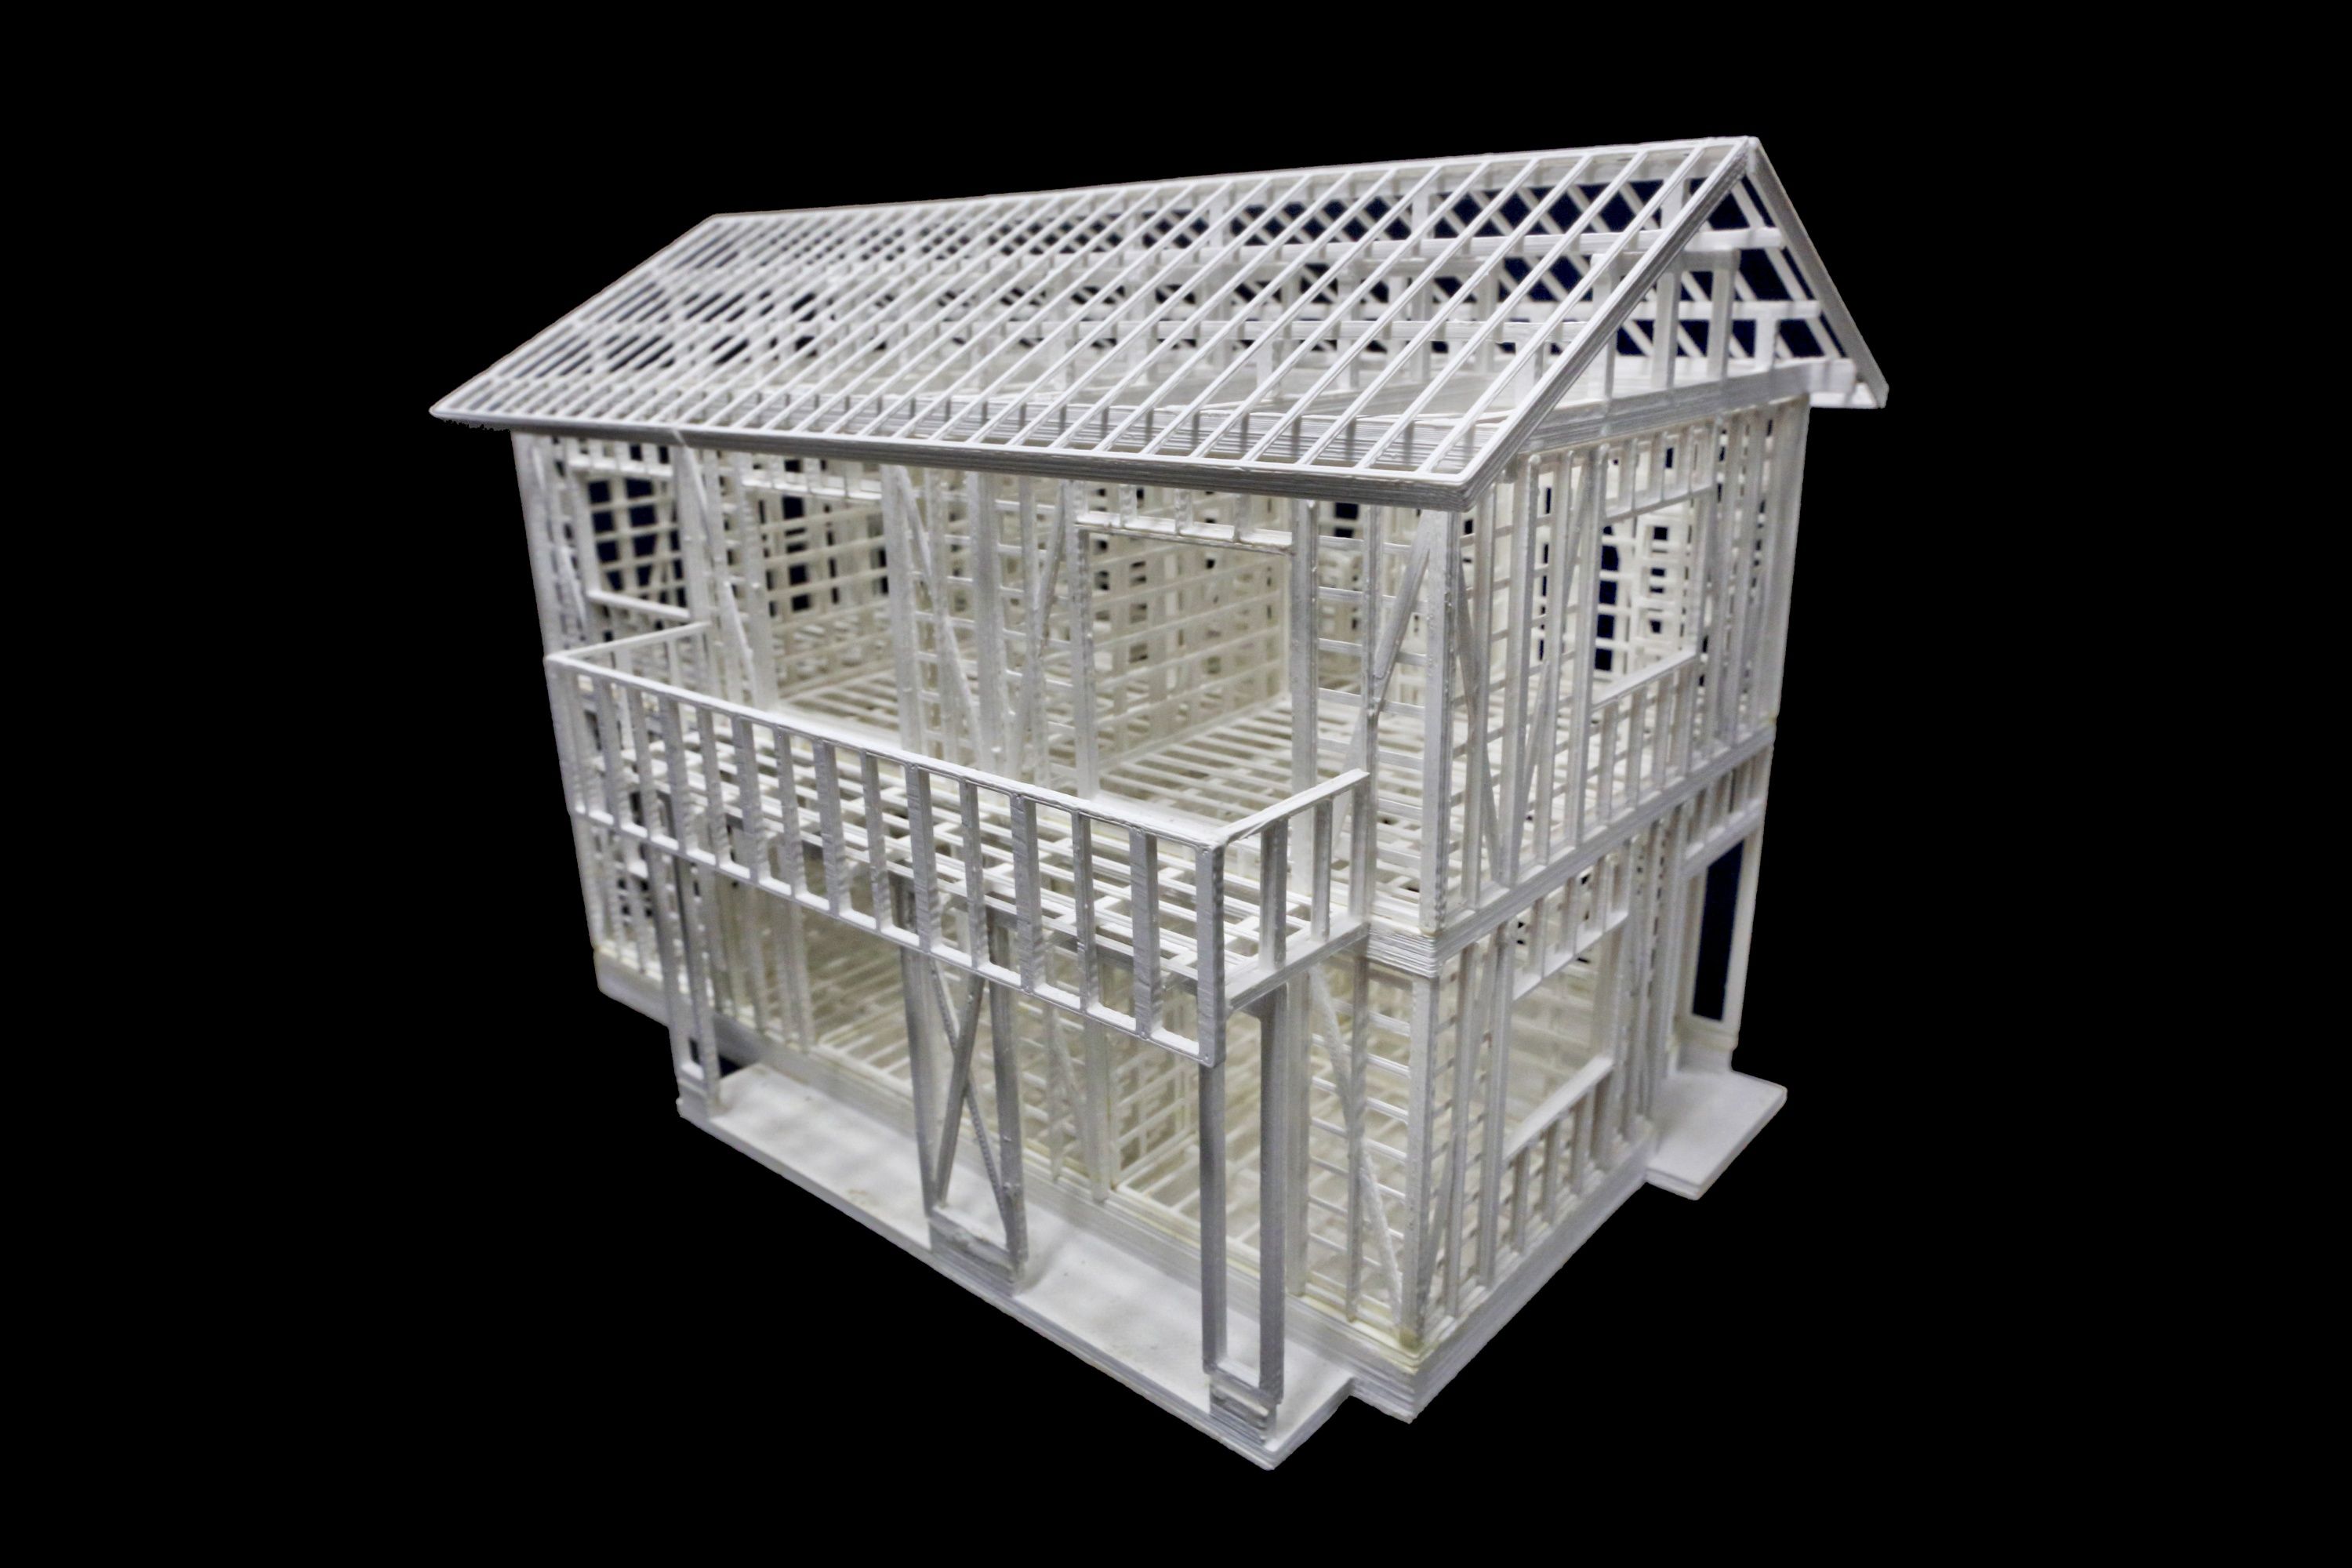 3dprinter-house-002